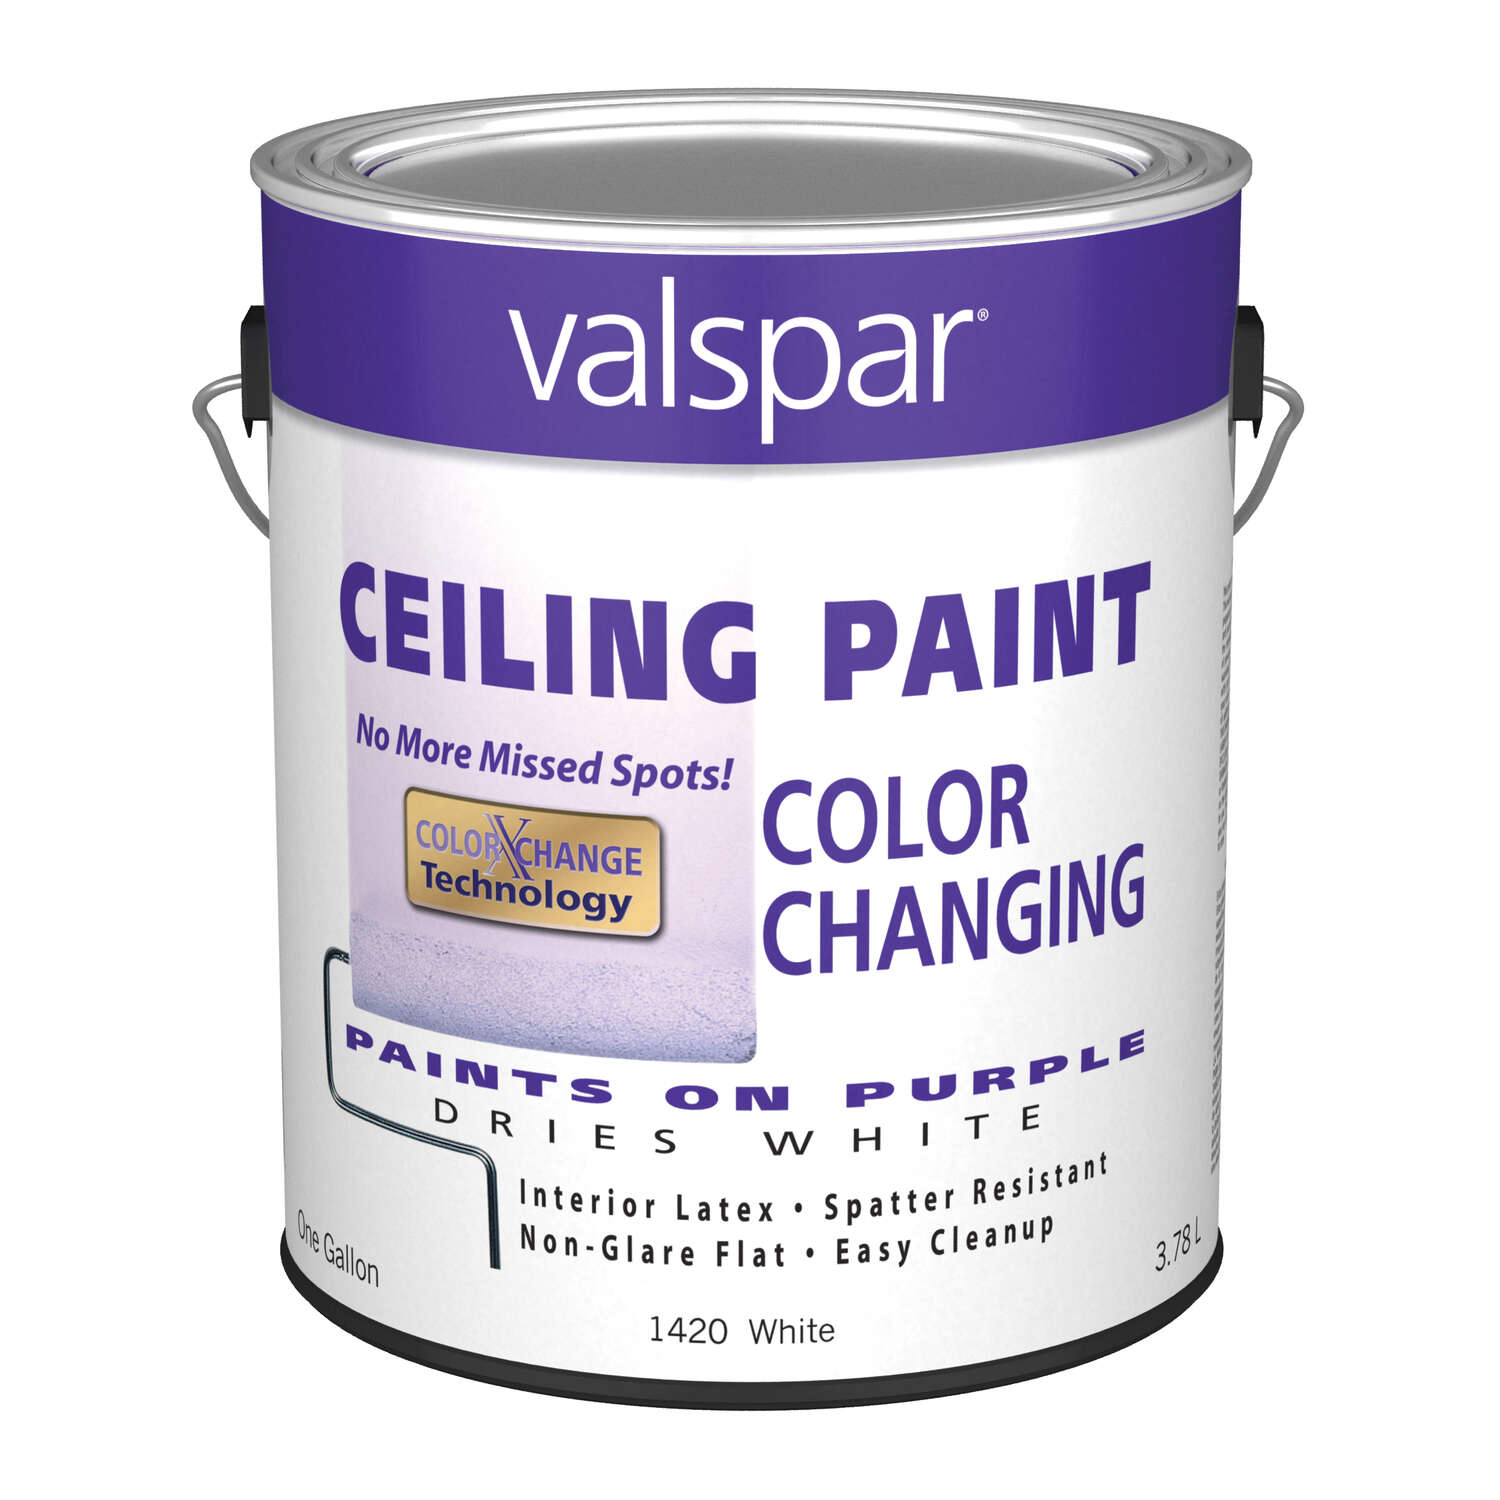 Valspar  Flat  Purple to White  Vinyl Acetate Copolymer  Color Changing Ceiling Paint  Indoor  1 gal